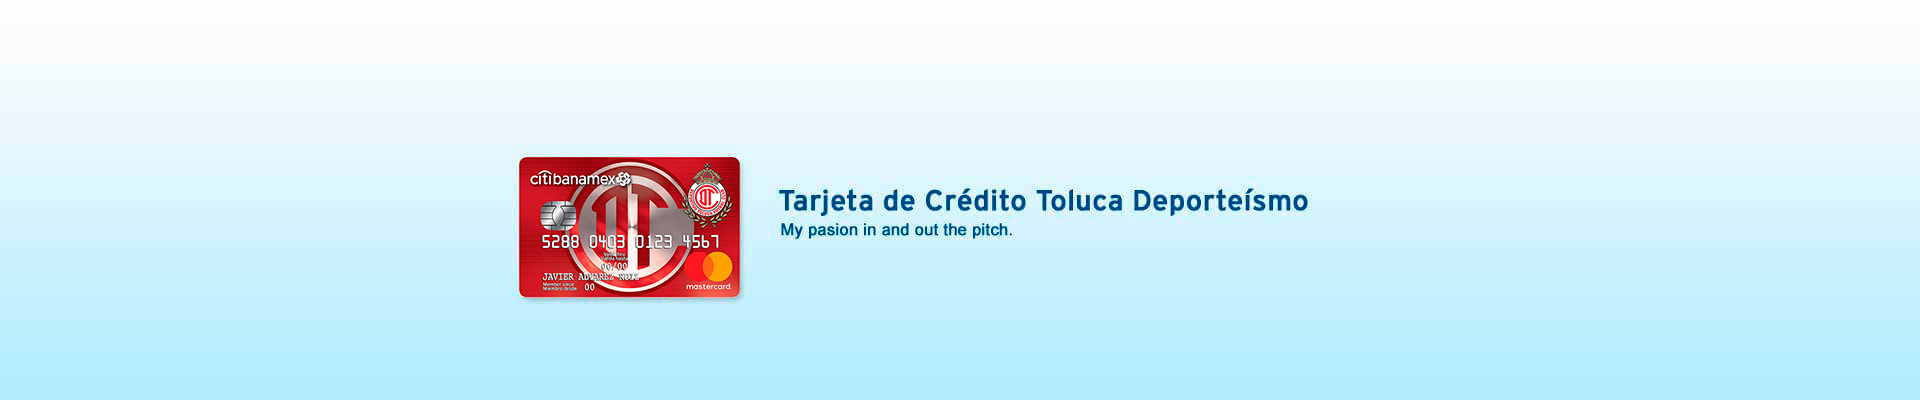 My passion with Tolúca Deporteísmo Credit Card